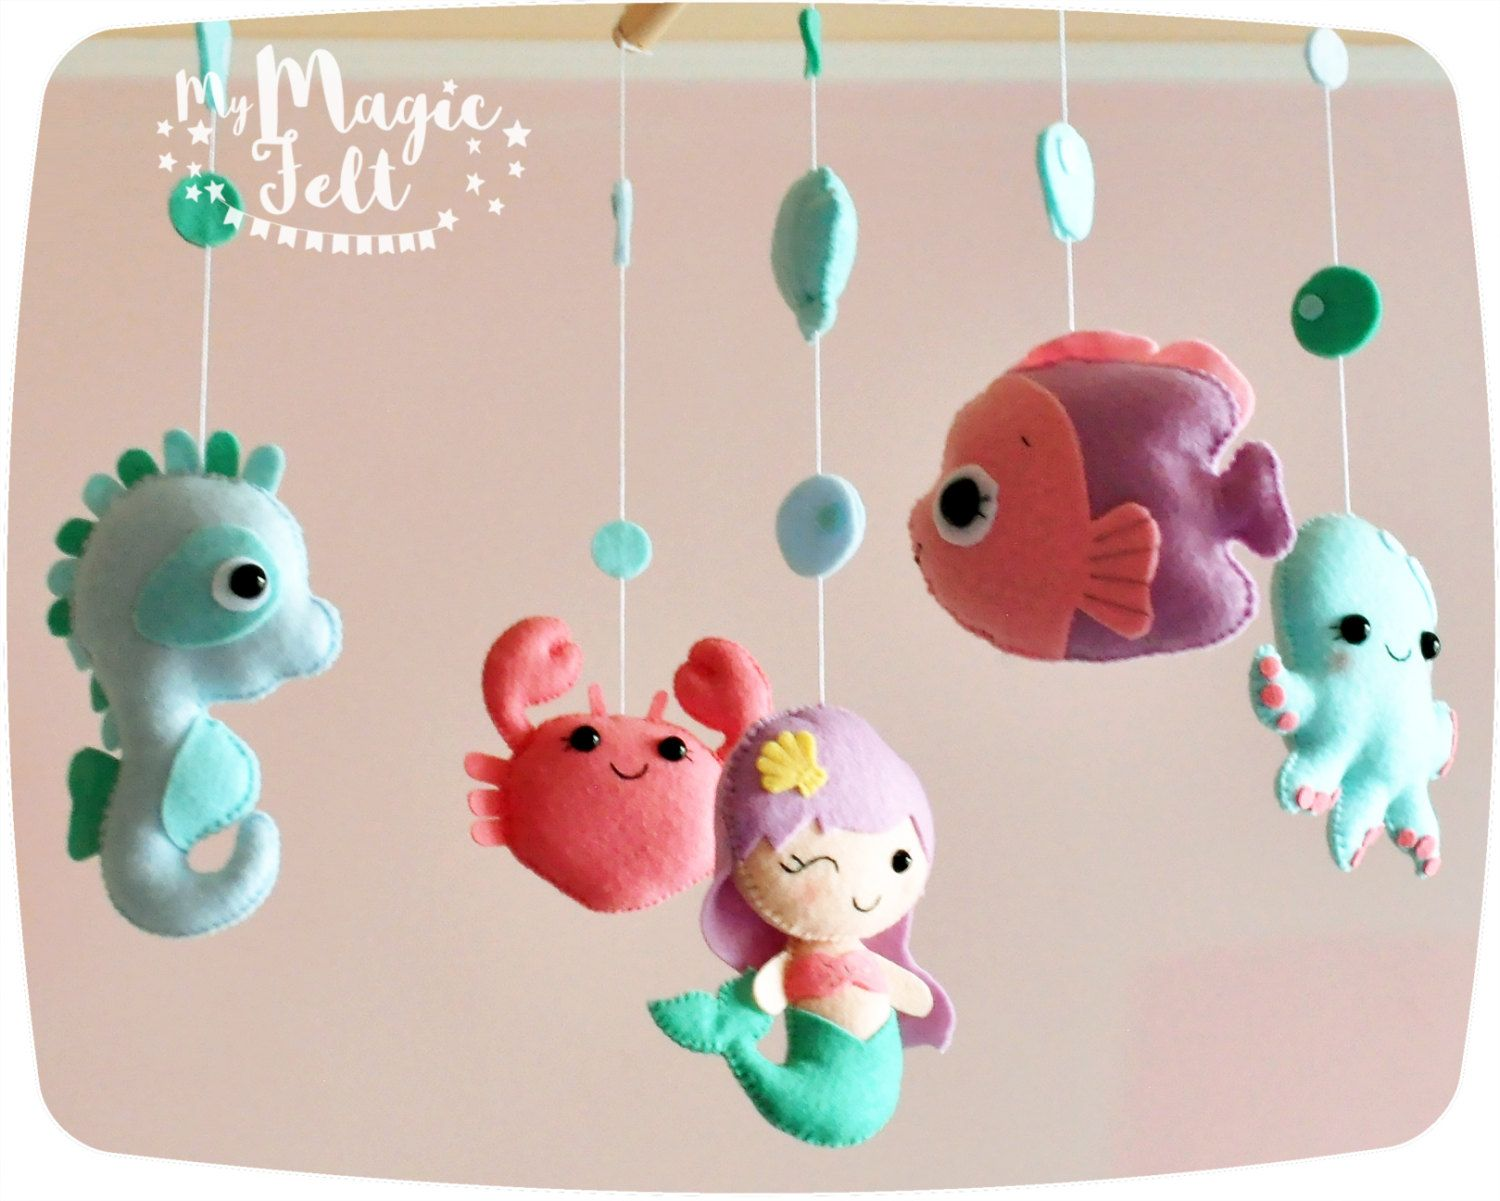 Under sea baby mobile ocean crib mobile mermaid with friends ocean under sea baby mobile ocean crib mobile mermaid with friends ocean nursery decor shower gift sea negle Choice Image